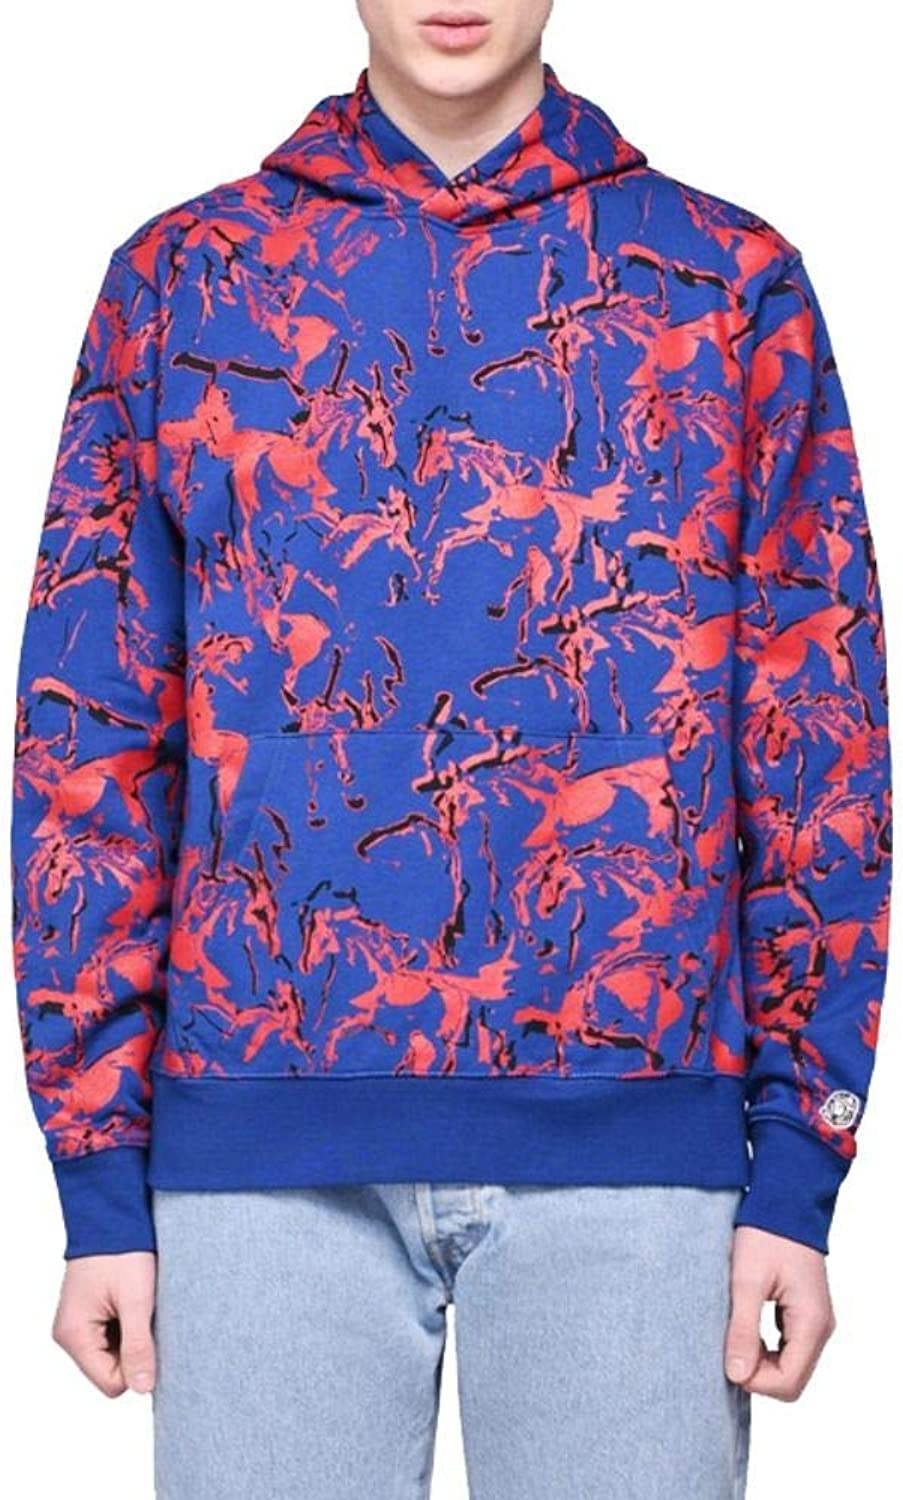 Billionaire Boys Club Men's B19128blueeE blueee Cotton Sweatshirt